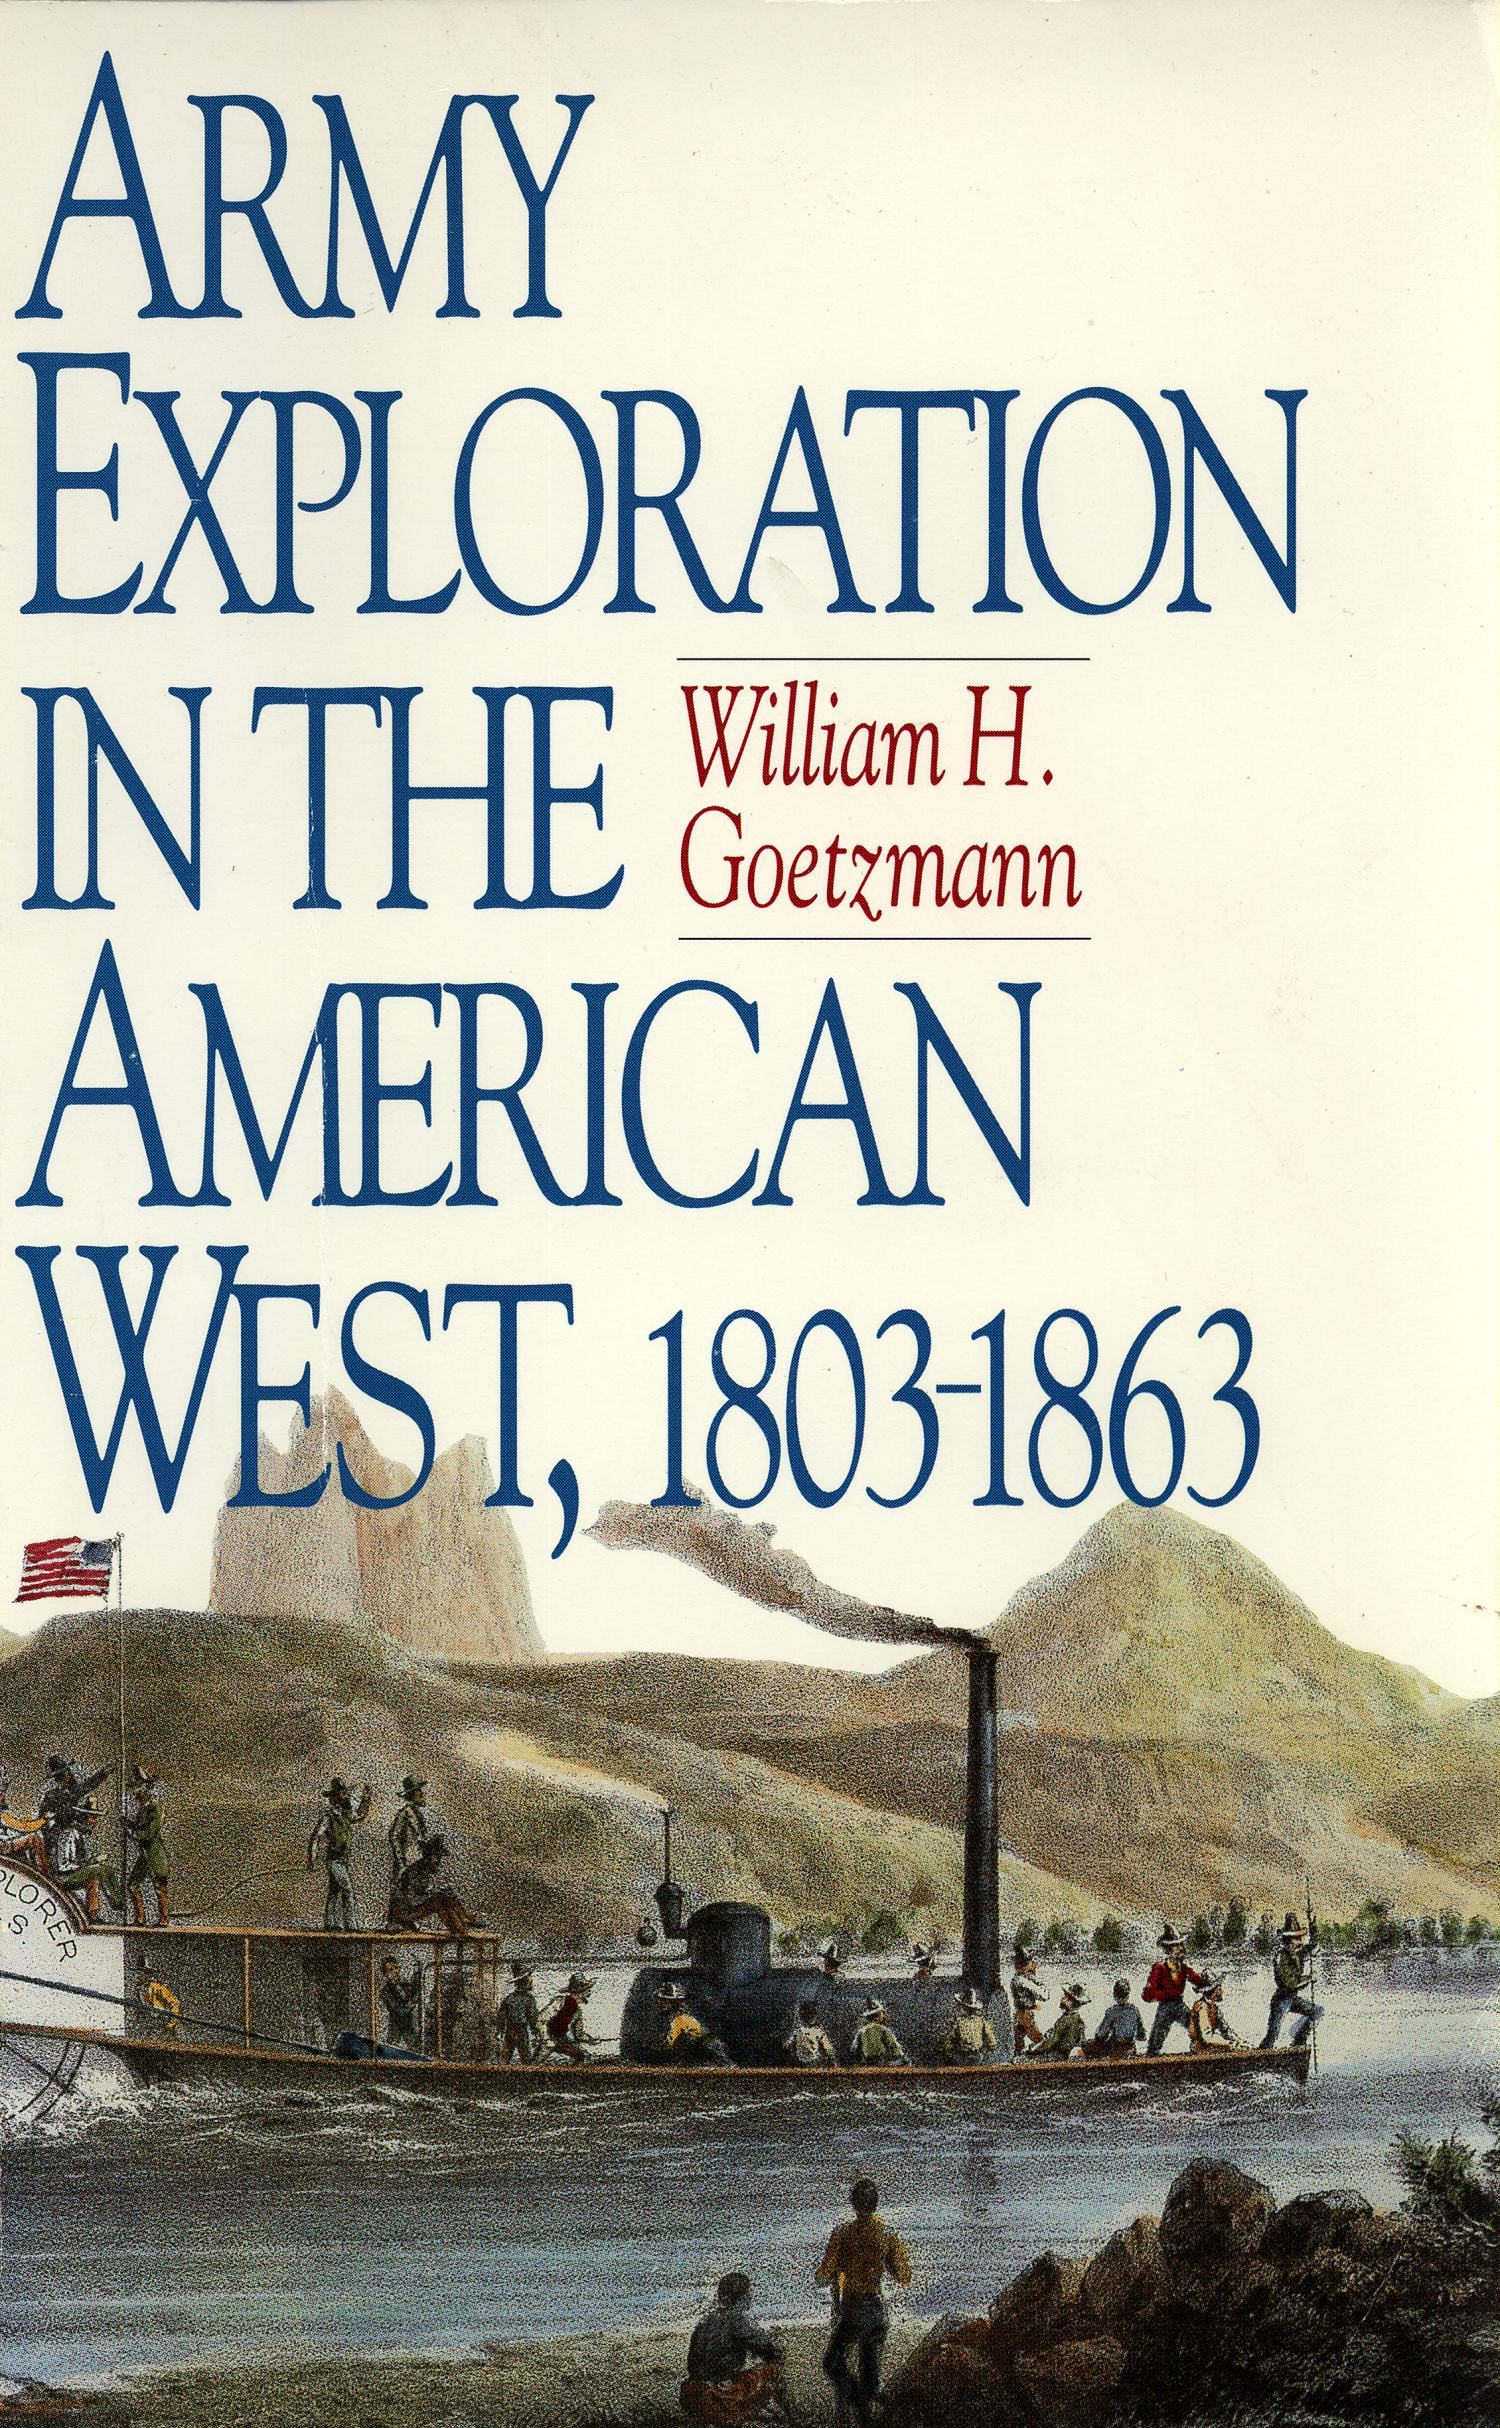 Army Exploration in the American West